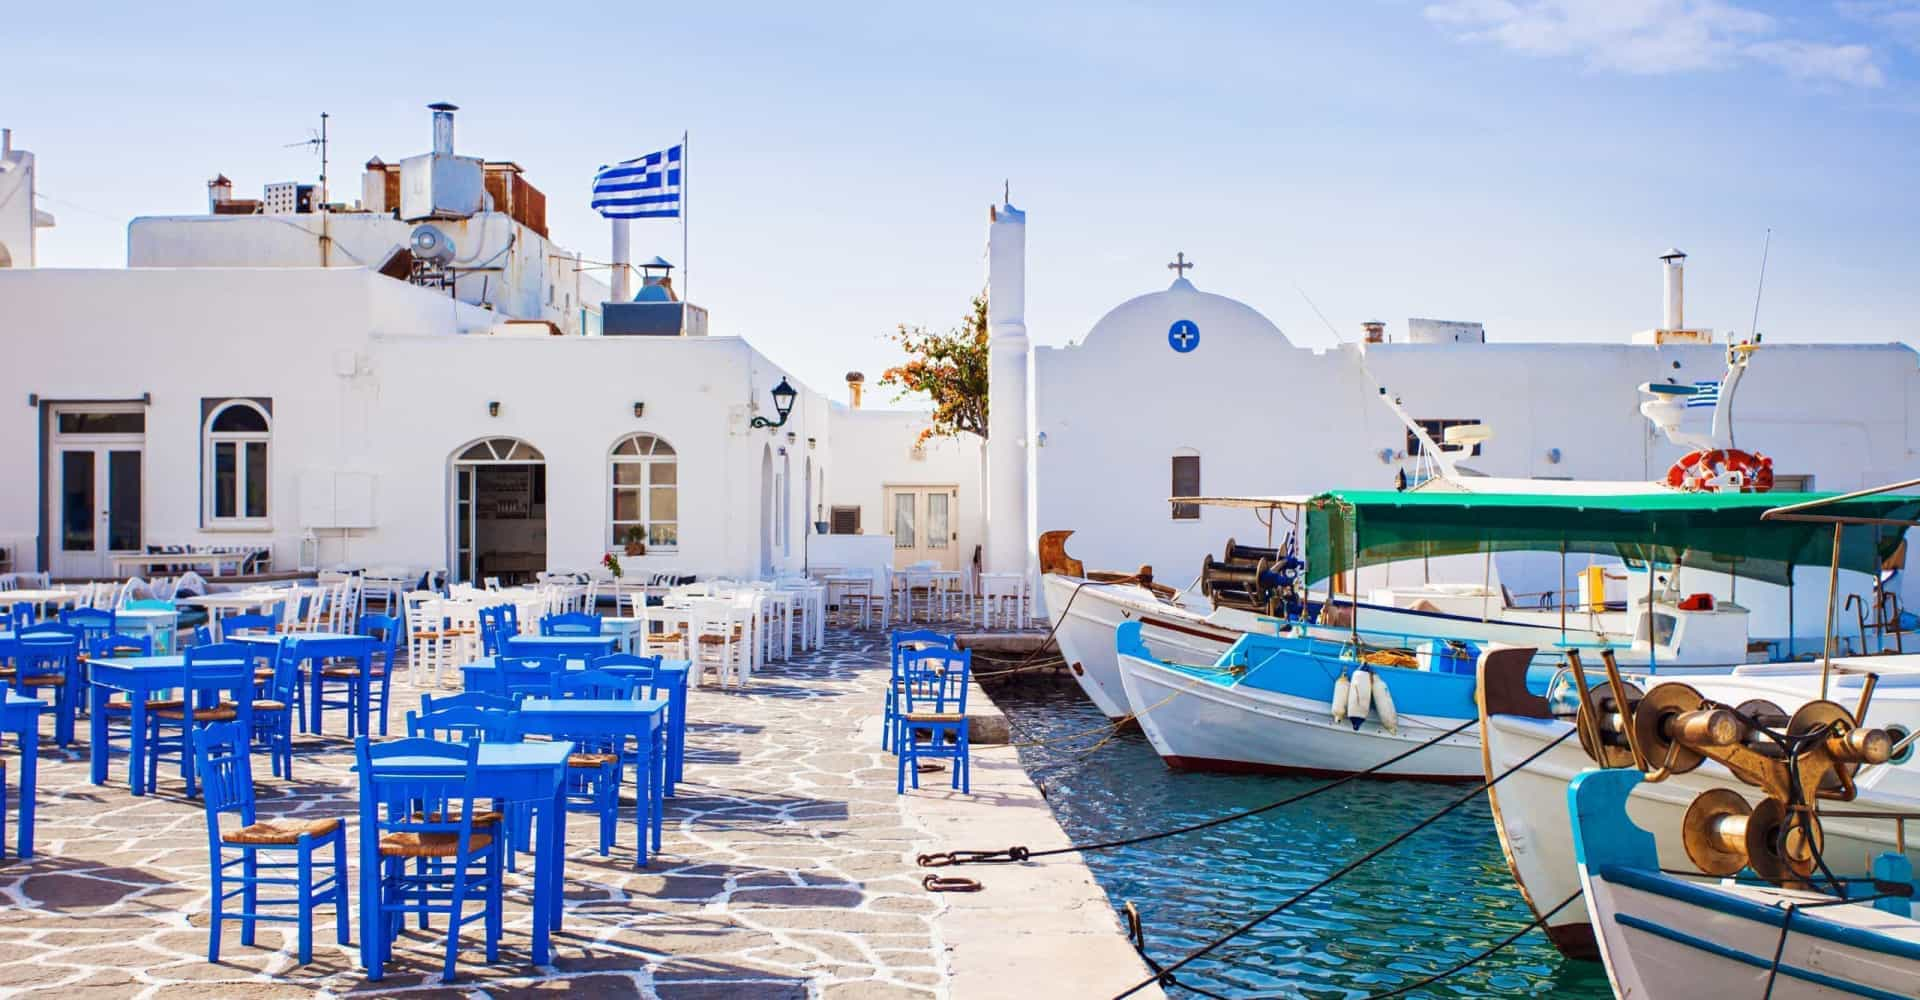 This Greek island joins the fight to reduce plastic pollution